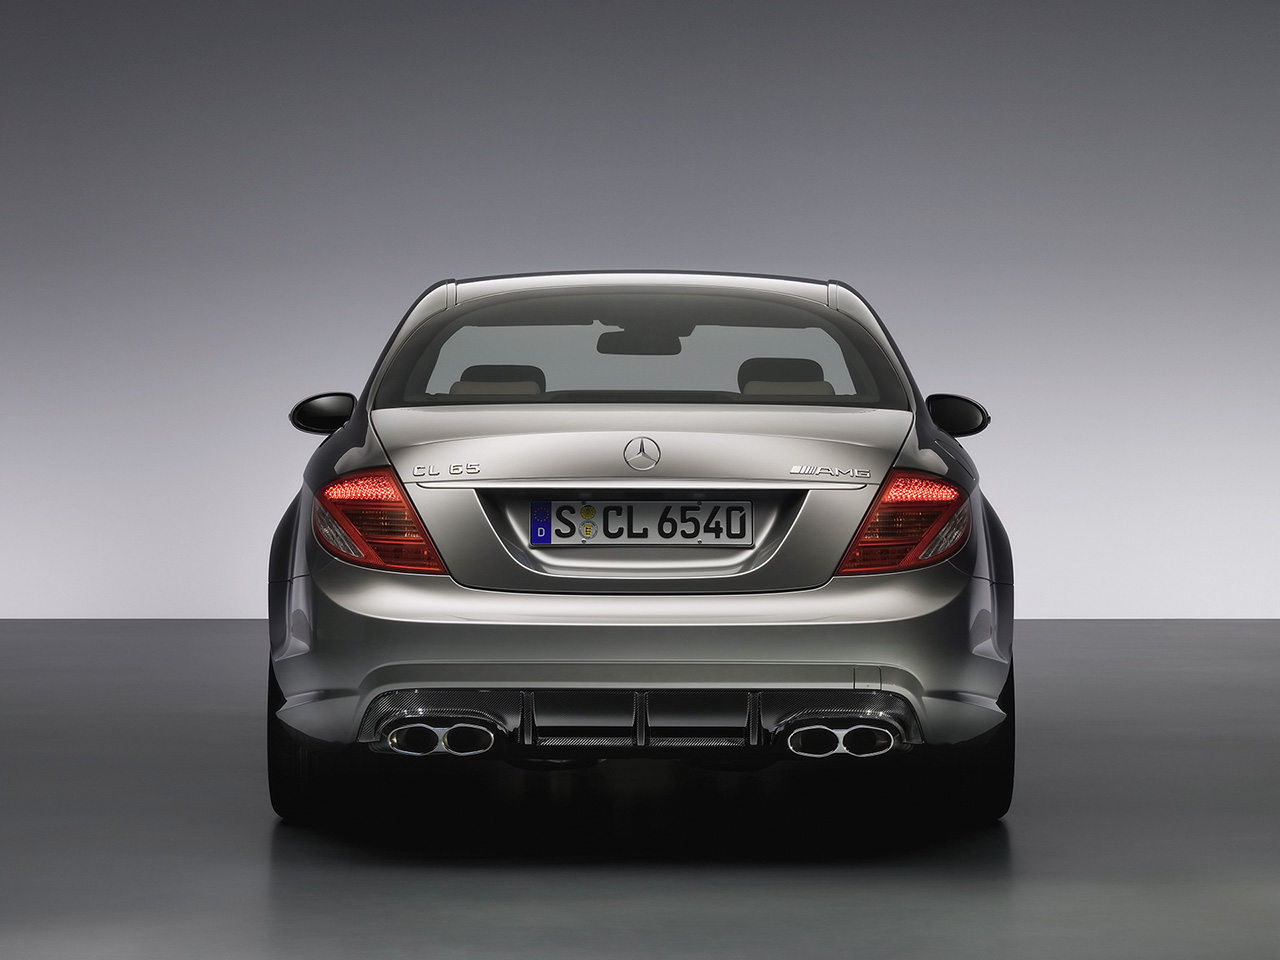 Mercedes benz cl65 amg 2011 pictures auto keirning cars for Mercedes benz cl65